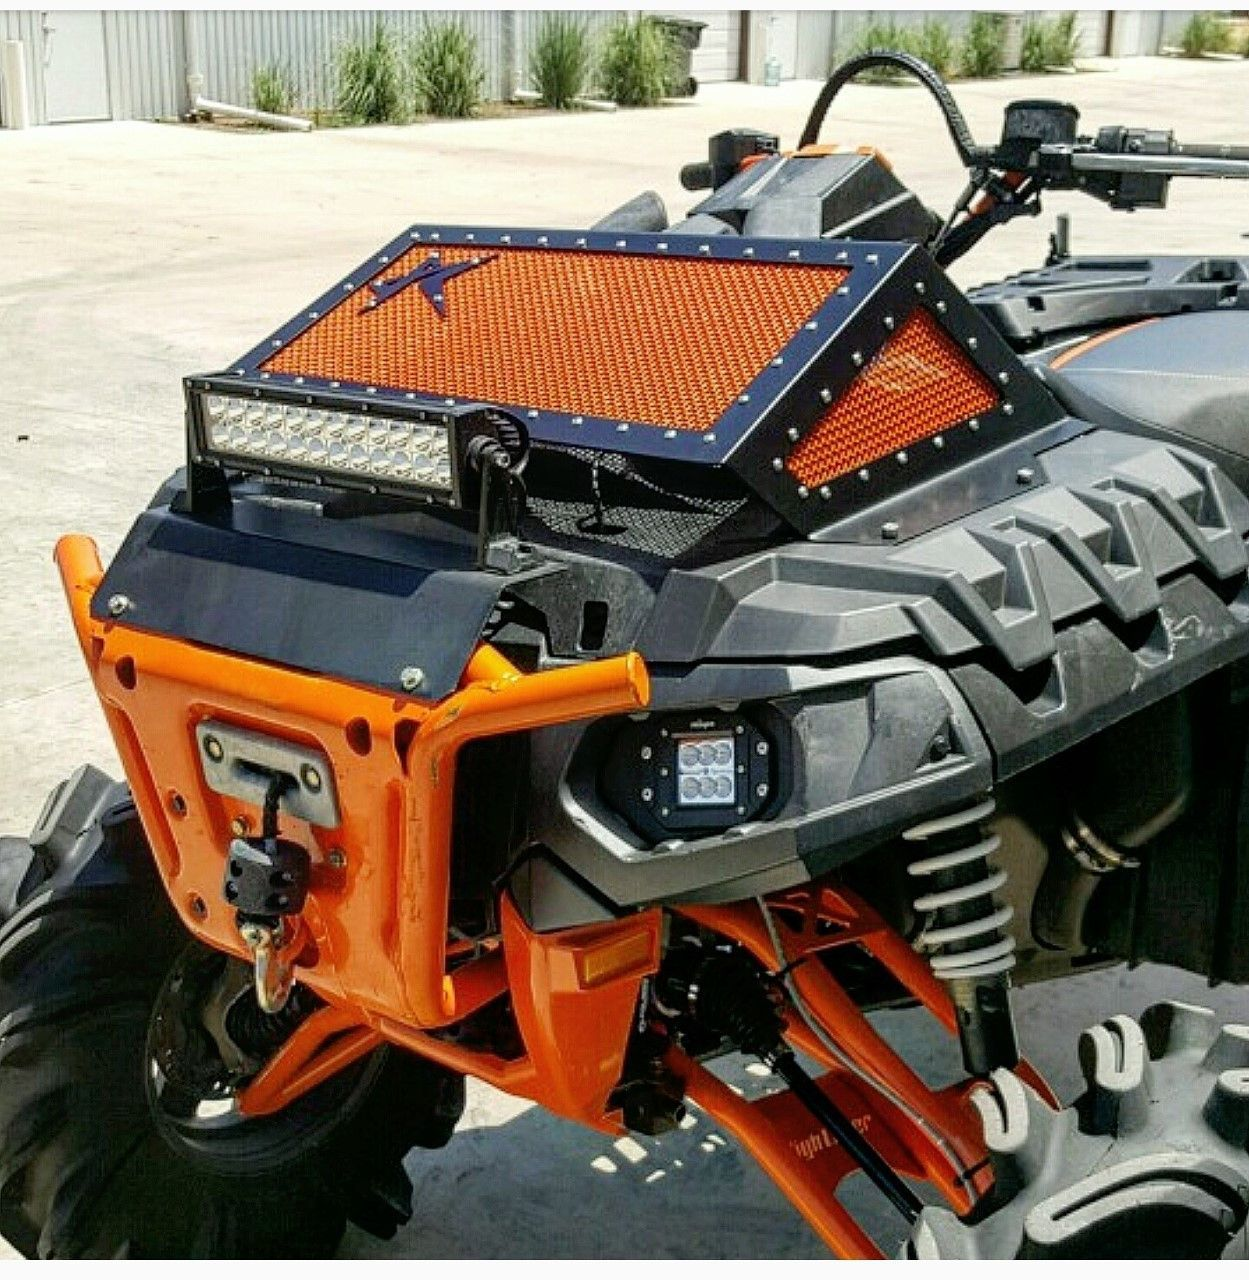 94 Polaris 400 Wiring Diagram Get Free Image About Wiring Diagram